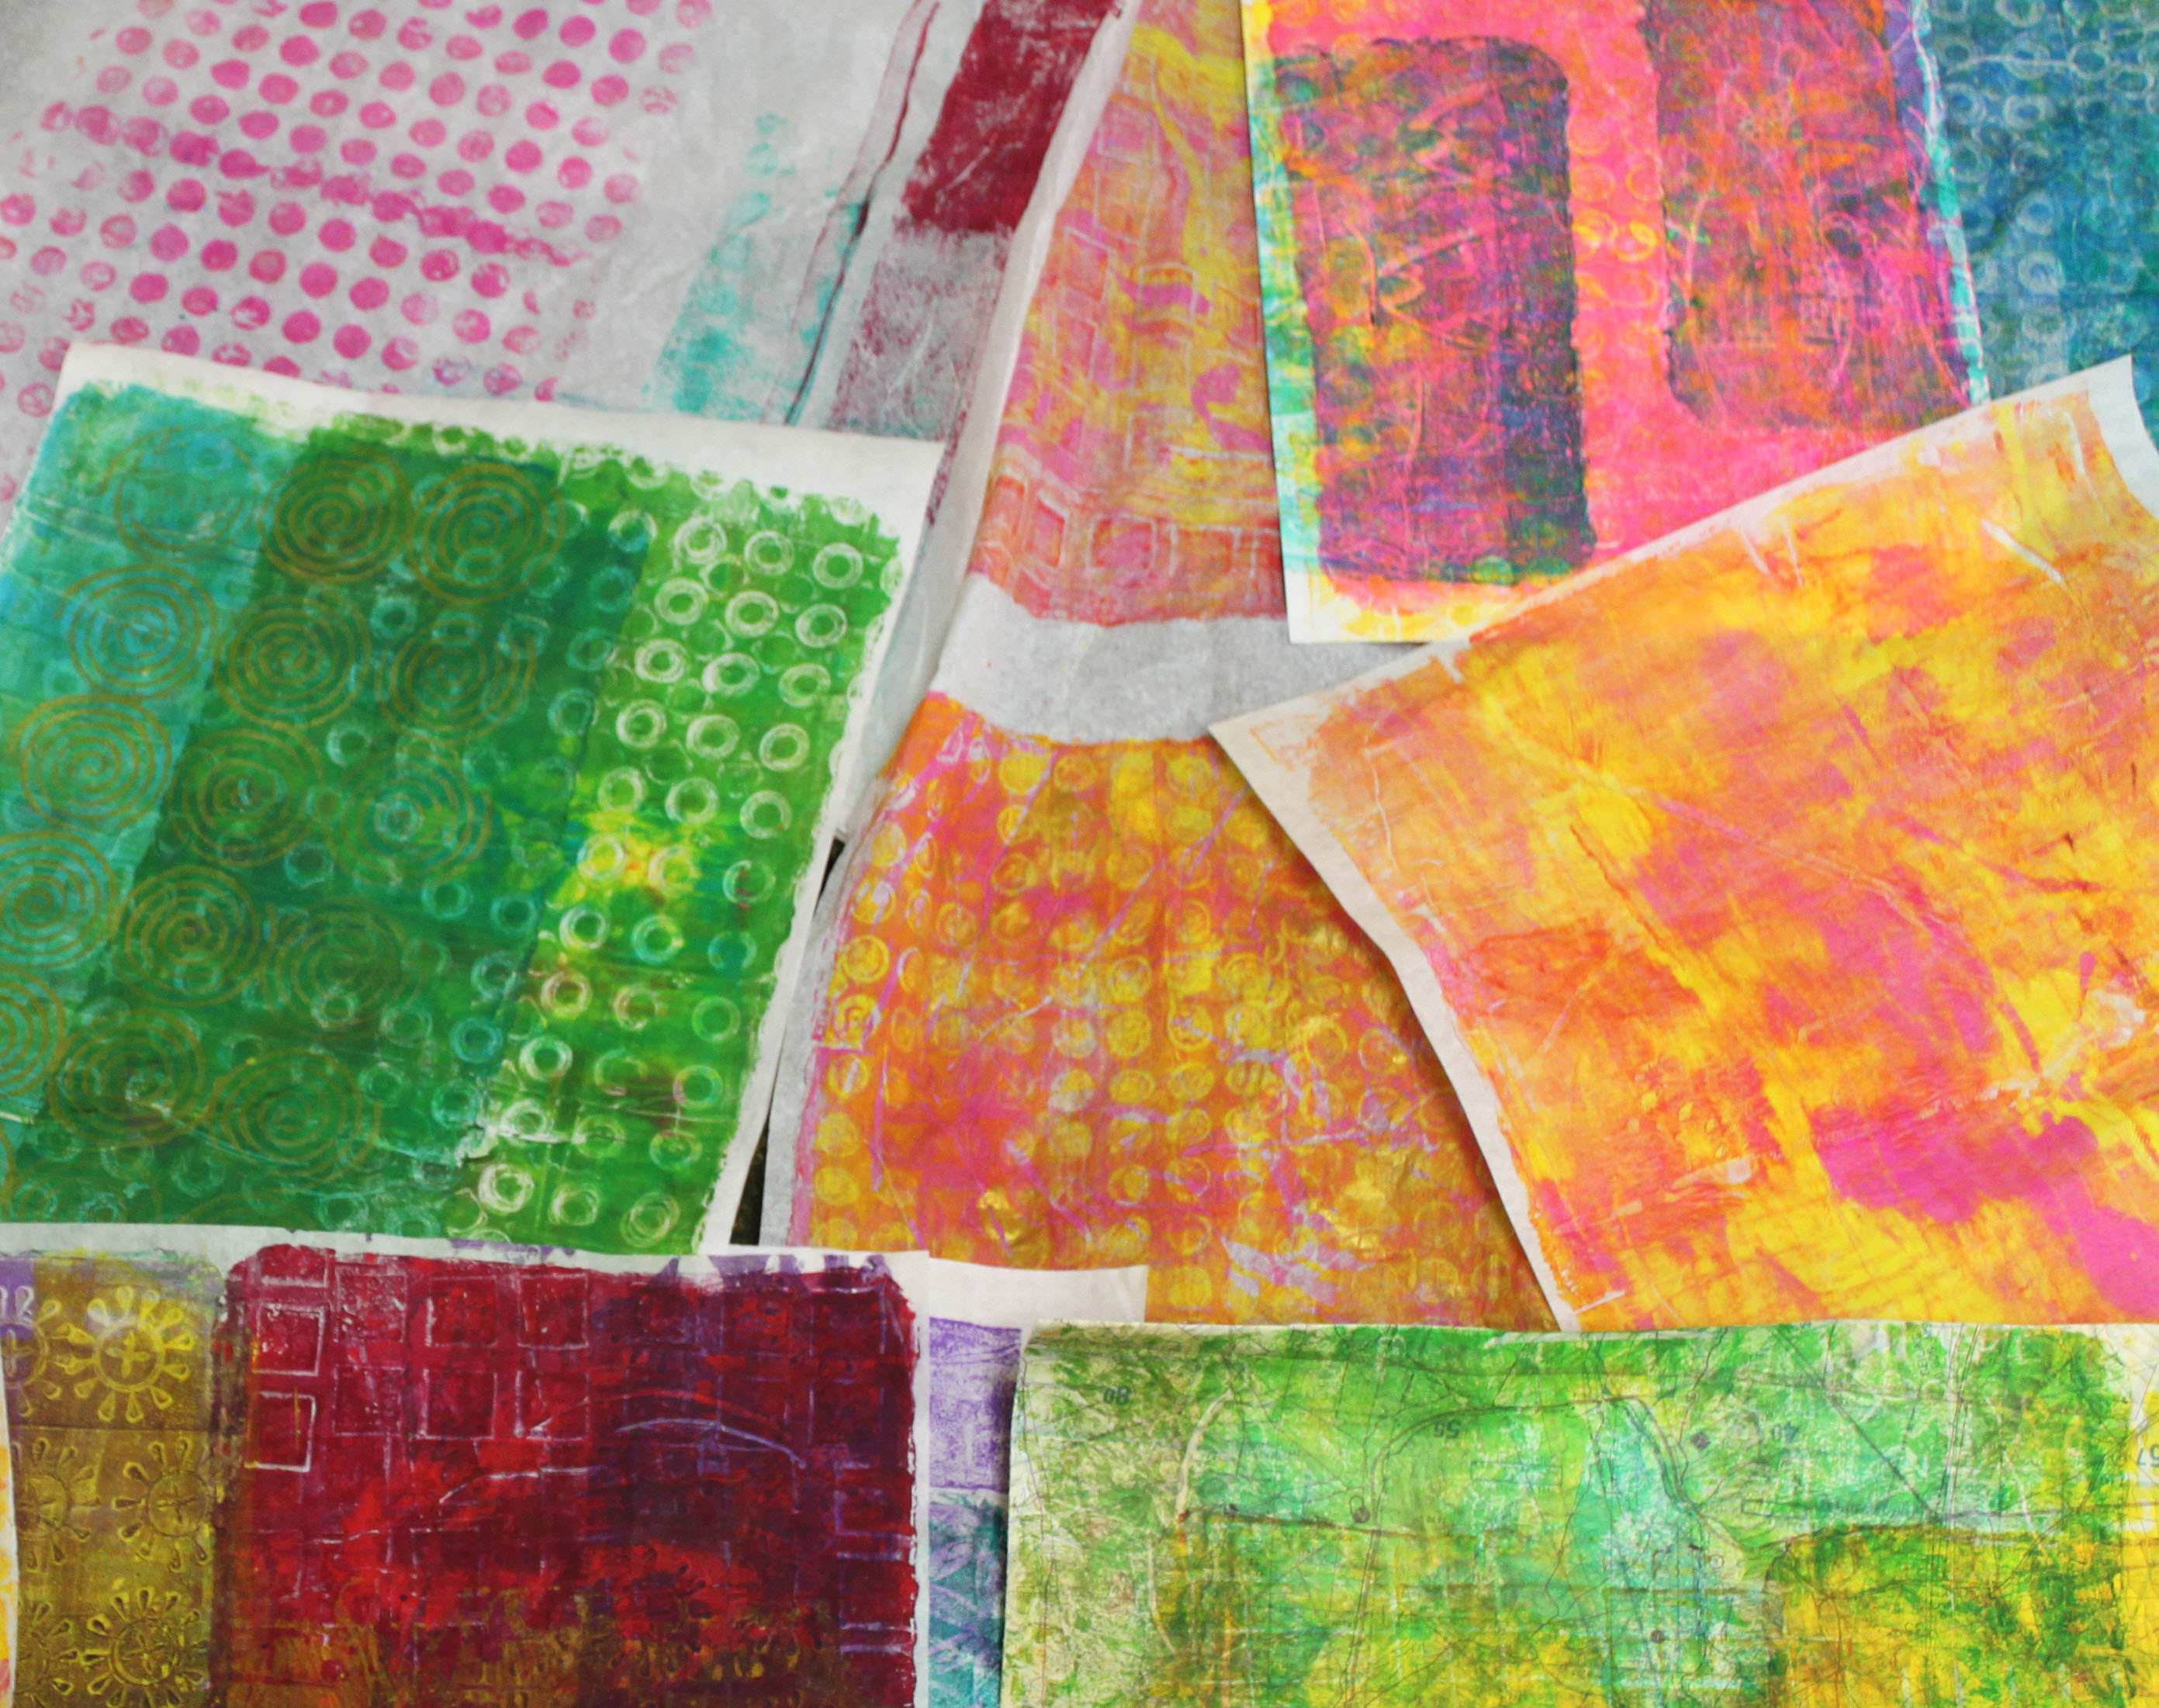 gelatin print papers